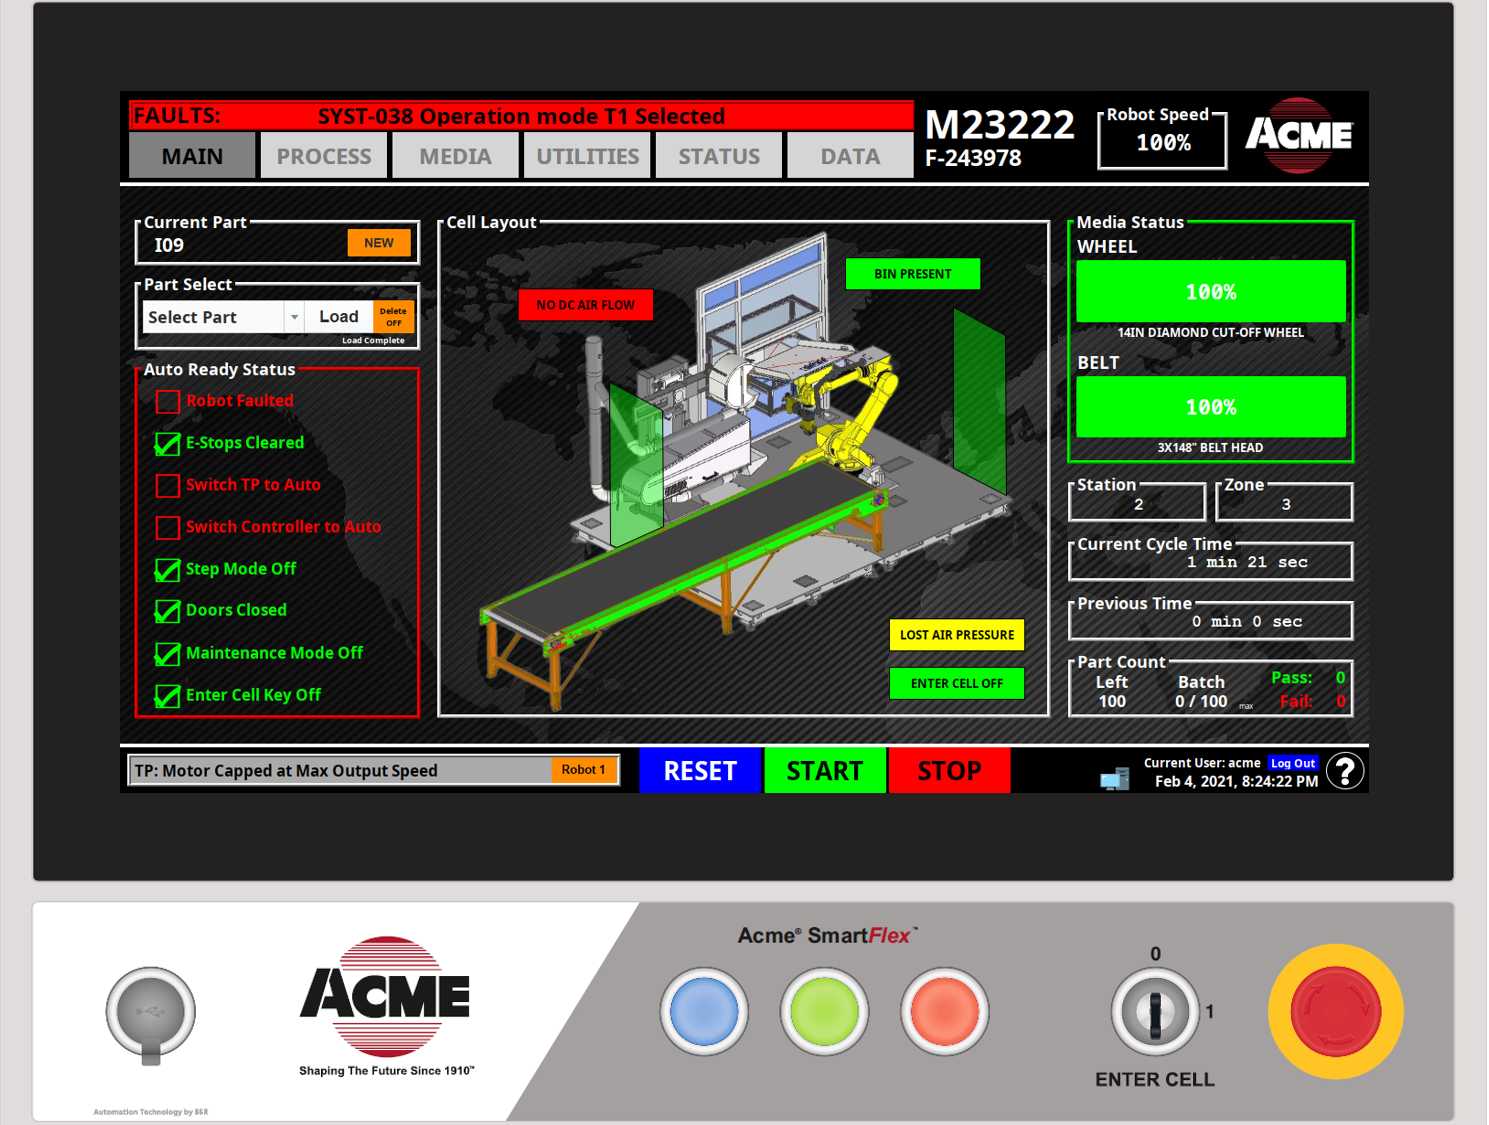 Operator Display Screen of an Acme Robotic Foundy Cut-Off Application